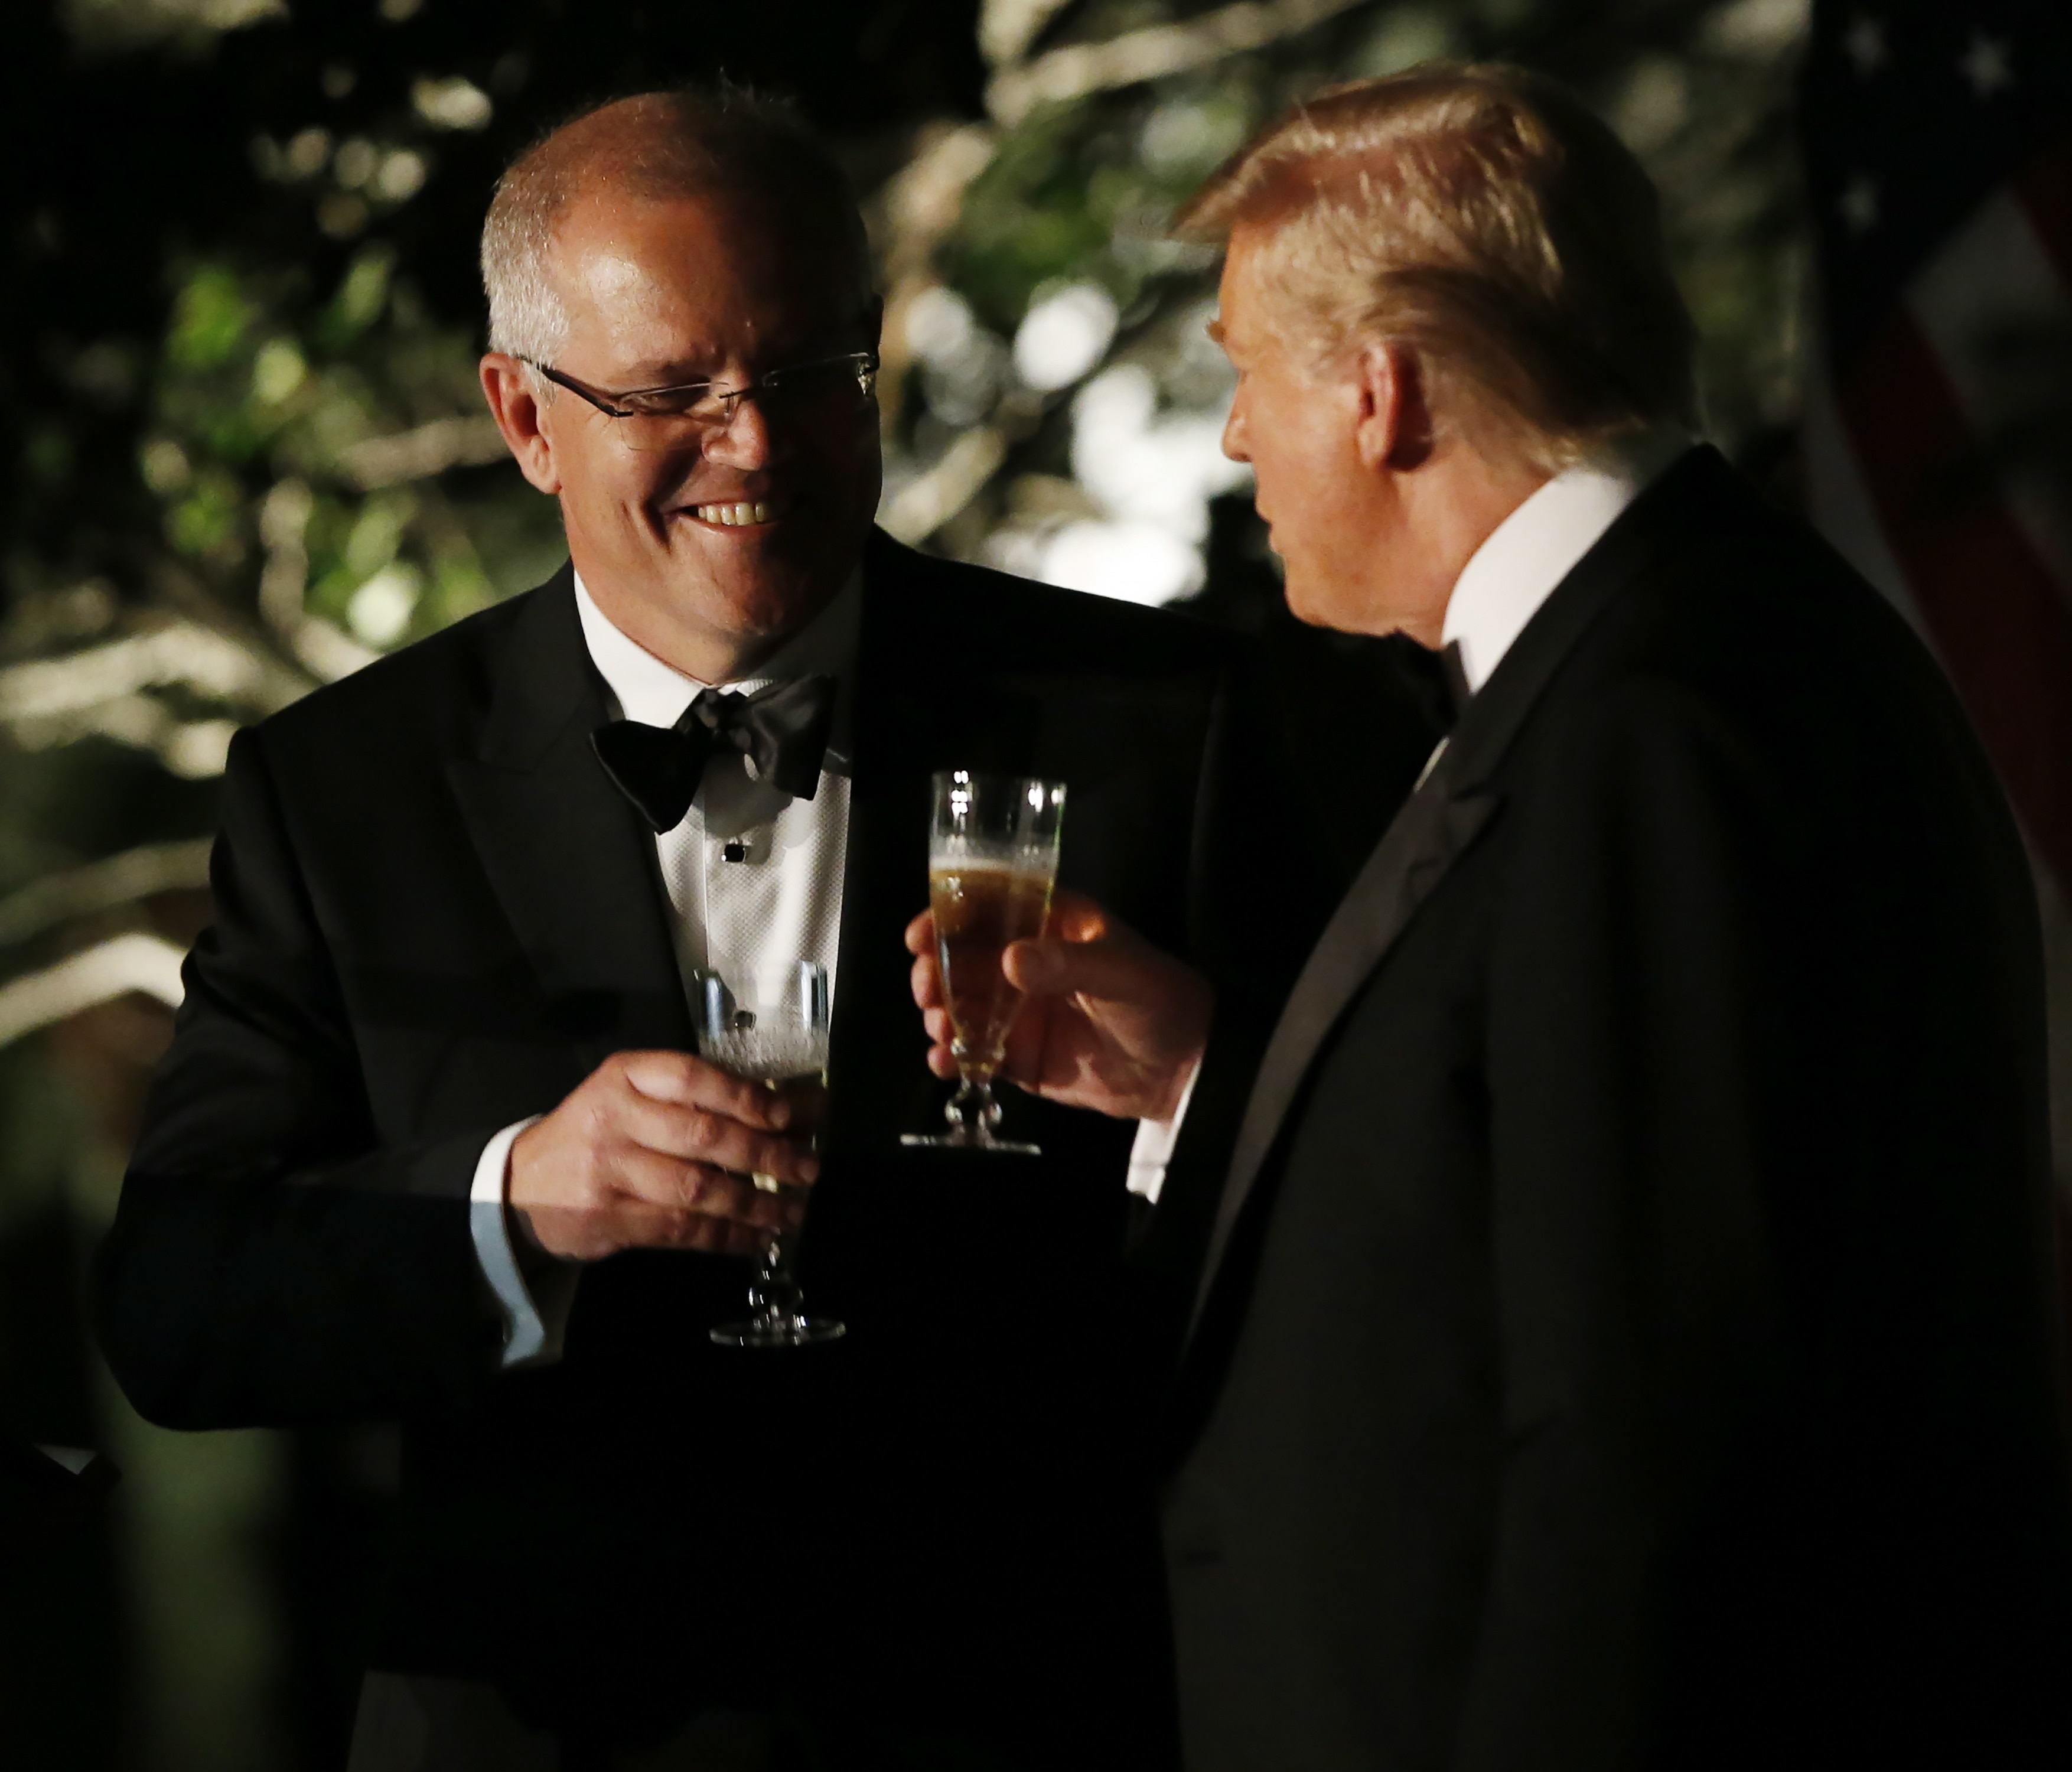 US President Donald Trump and Prime Minister Scott Morrison at the White House for a state dinner.